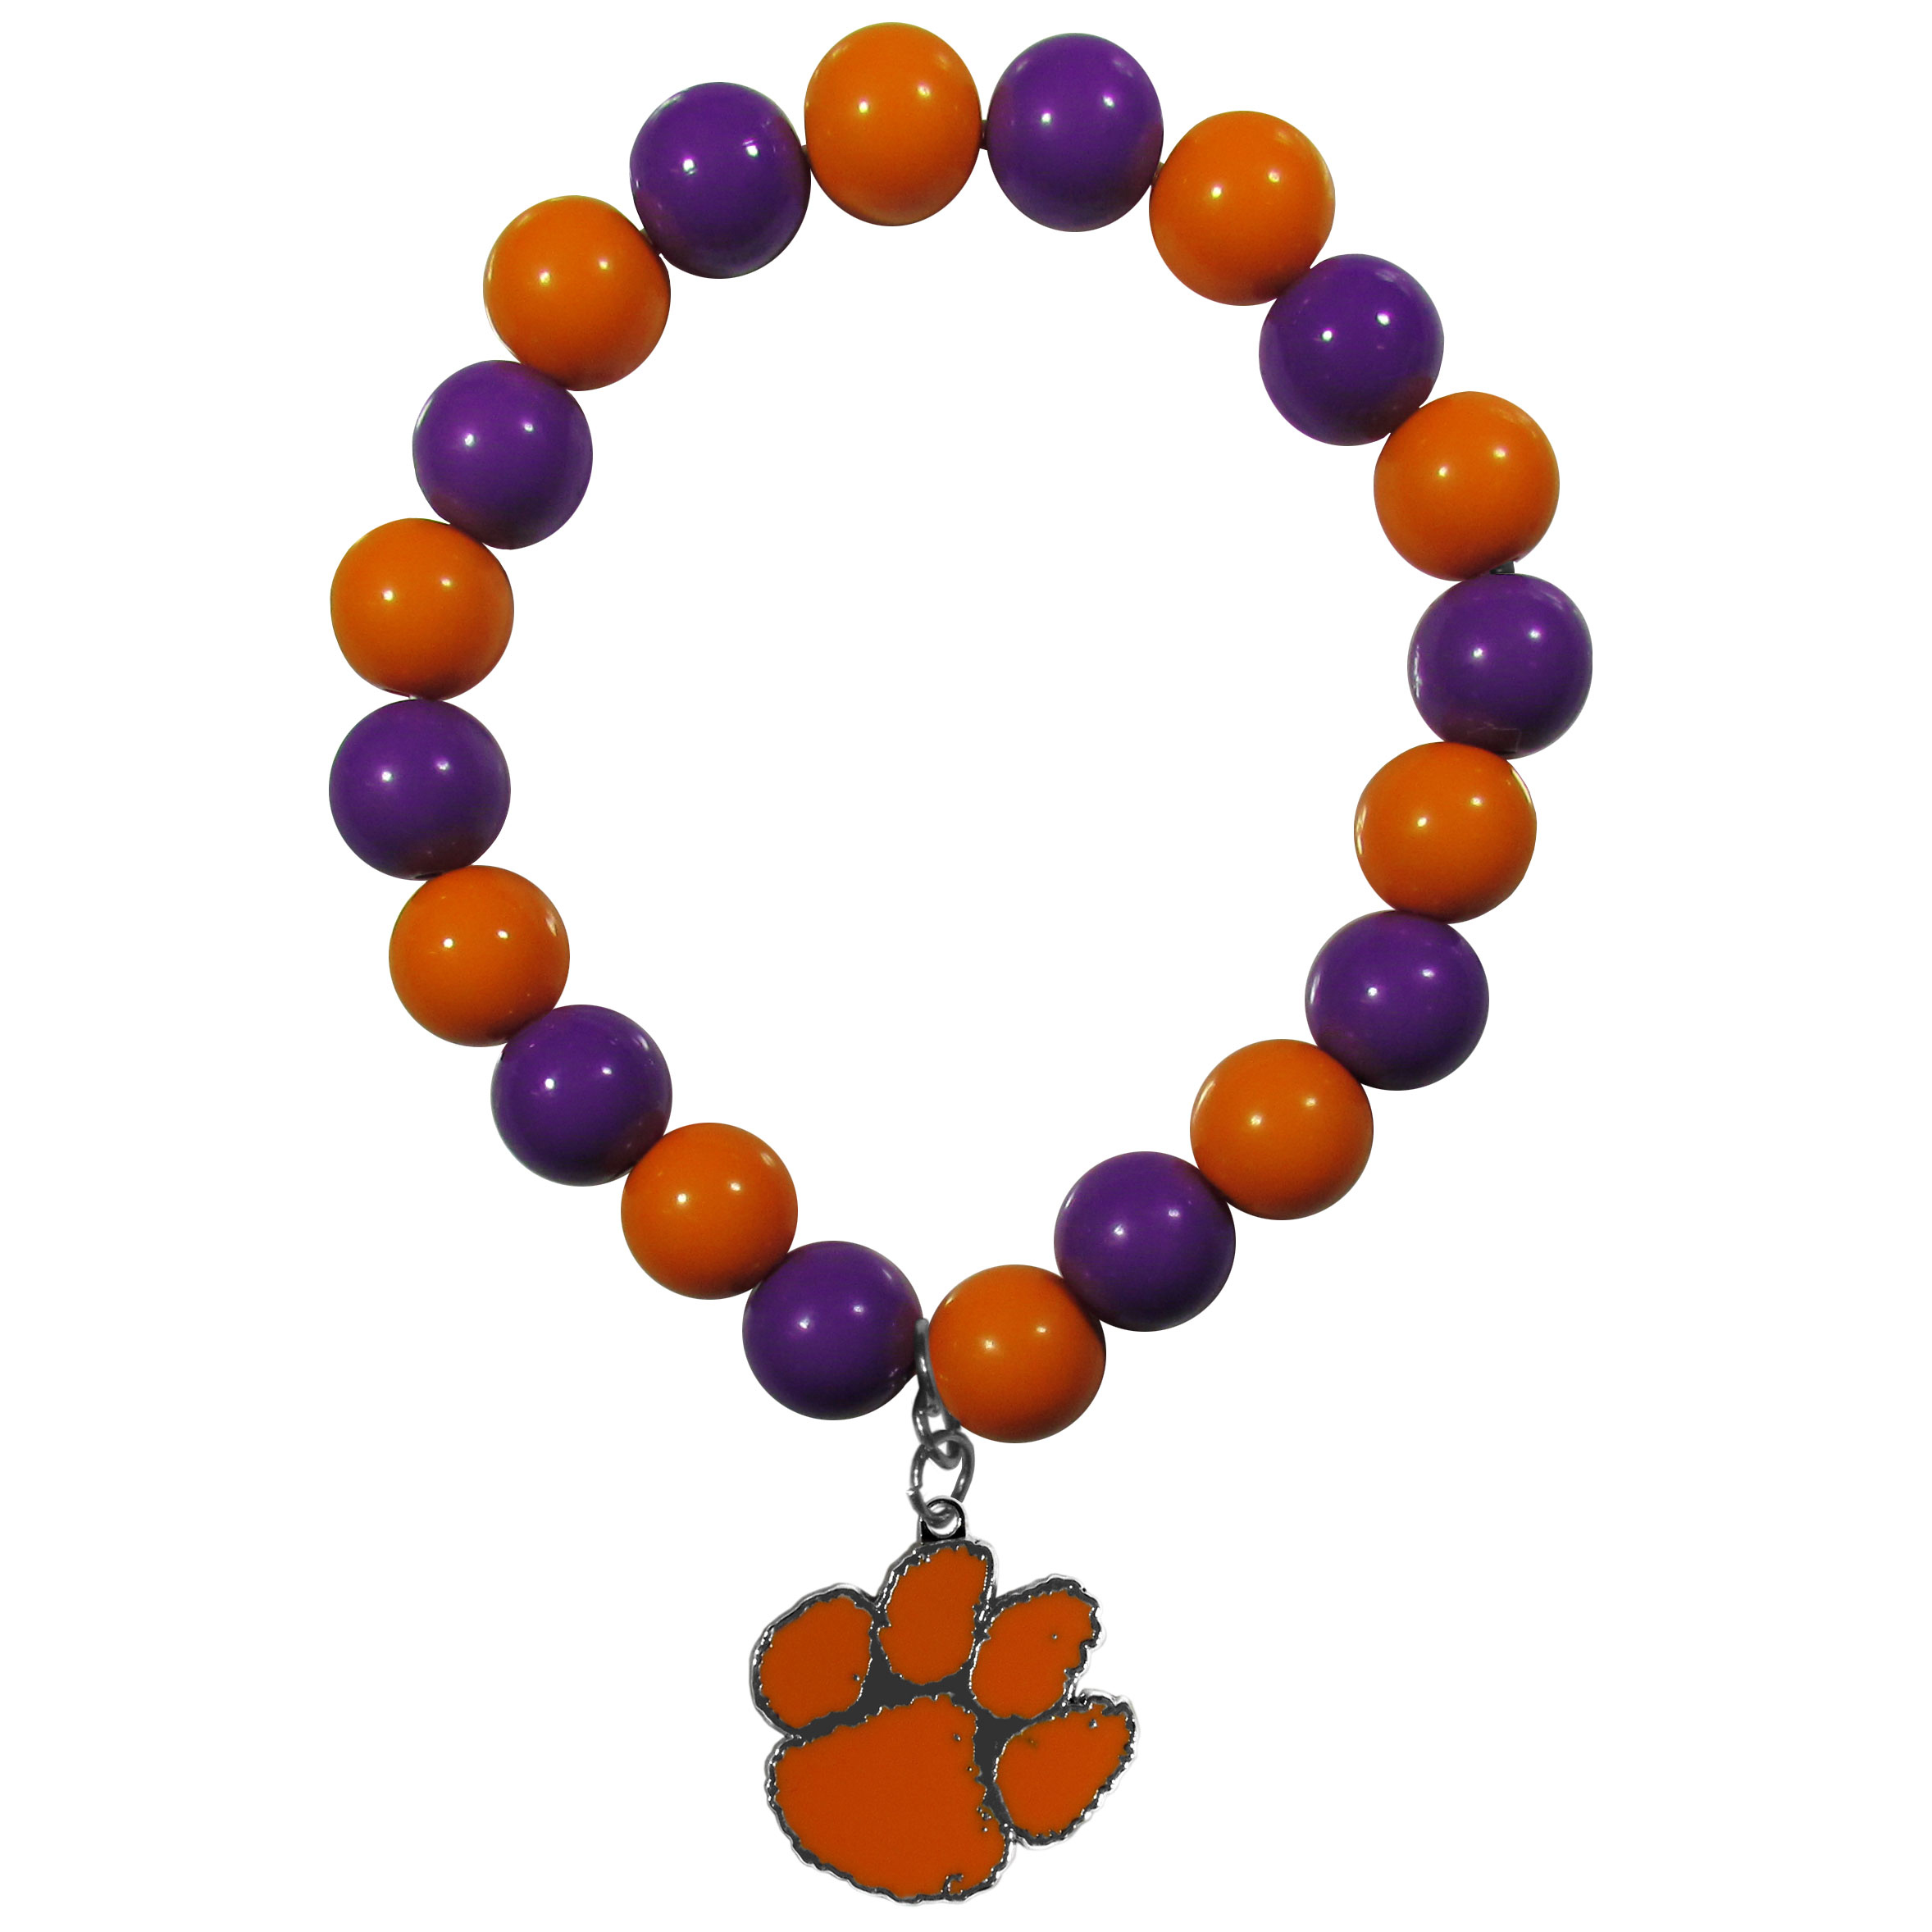 Clemson Tigers Fan Bead Bracelet - Flash your Clemson Tigers spirit with this bright stretch bracelet. This new bracelet features multicolored team beads on stretch cord with a nickel-free enameled chrome team charm. This bracelet adds the perfect pop of color to your game day accessories.